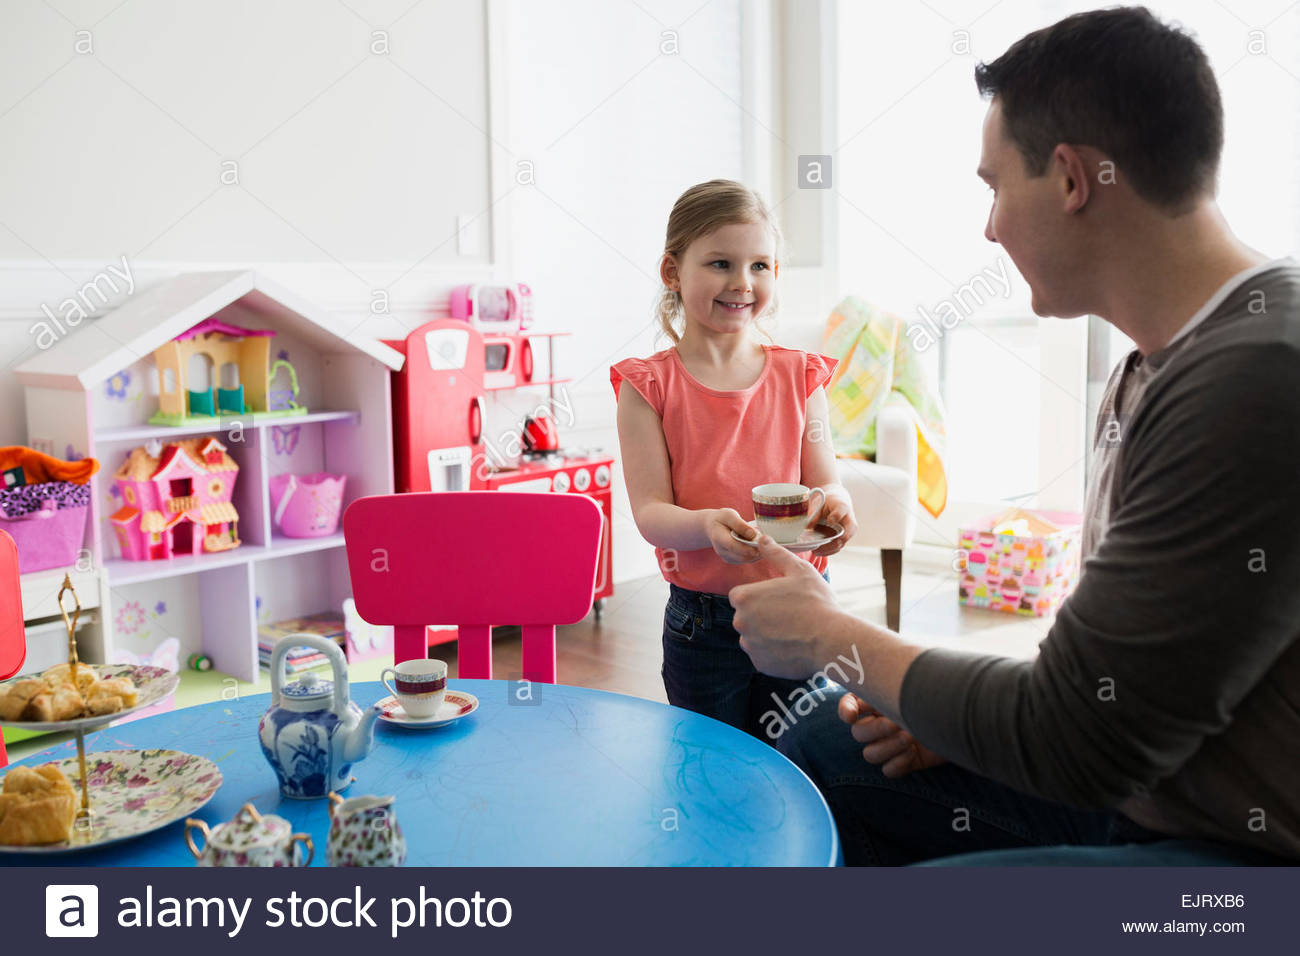 Daughter serving father tea at tea party - Stock Image